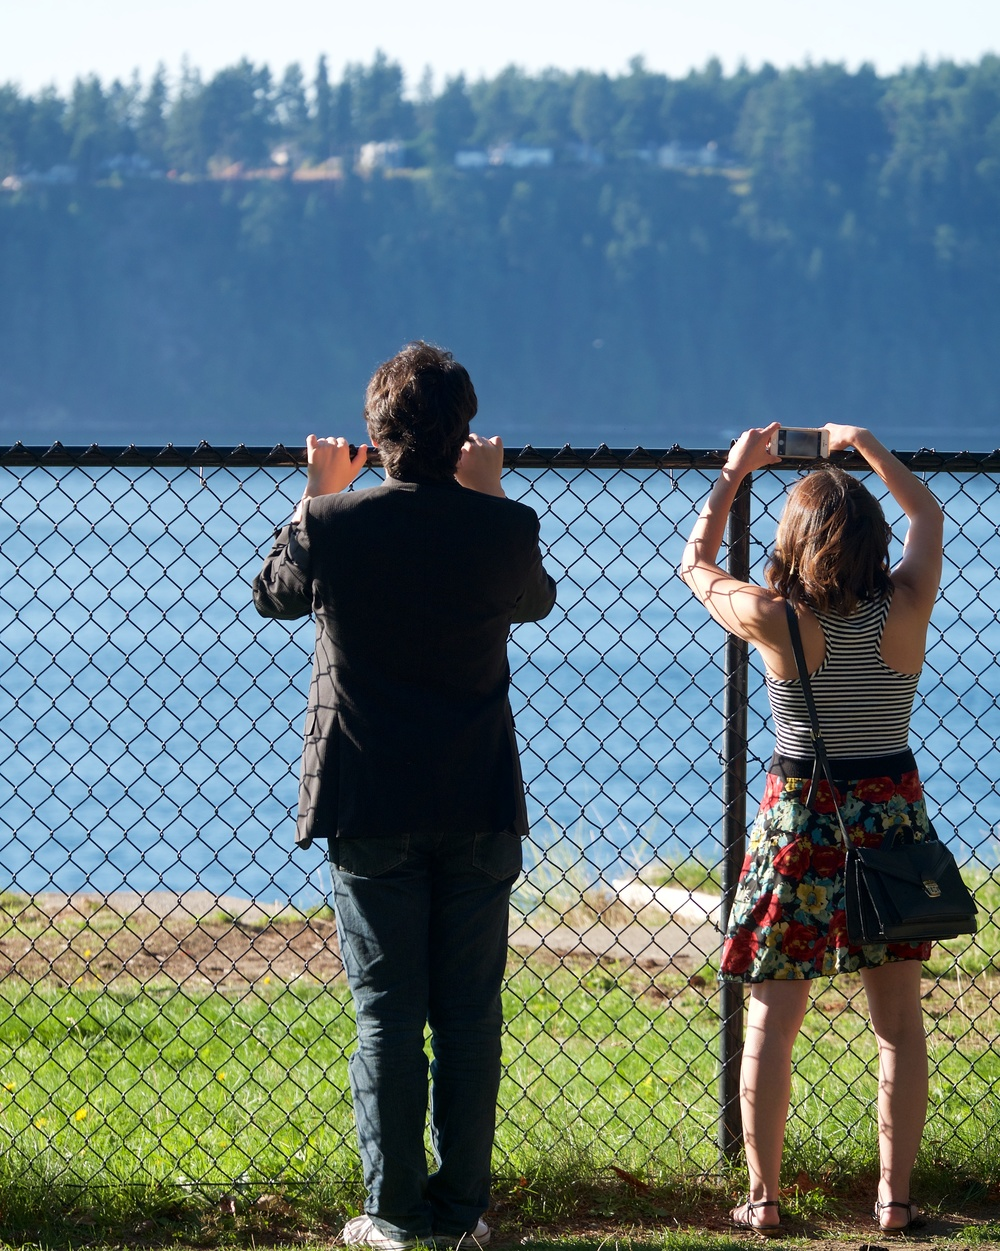 Tynor and Lindsay checking out the view